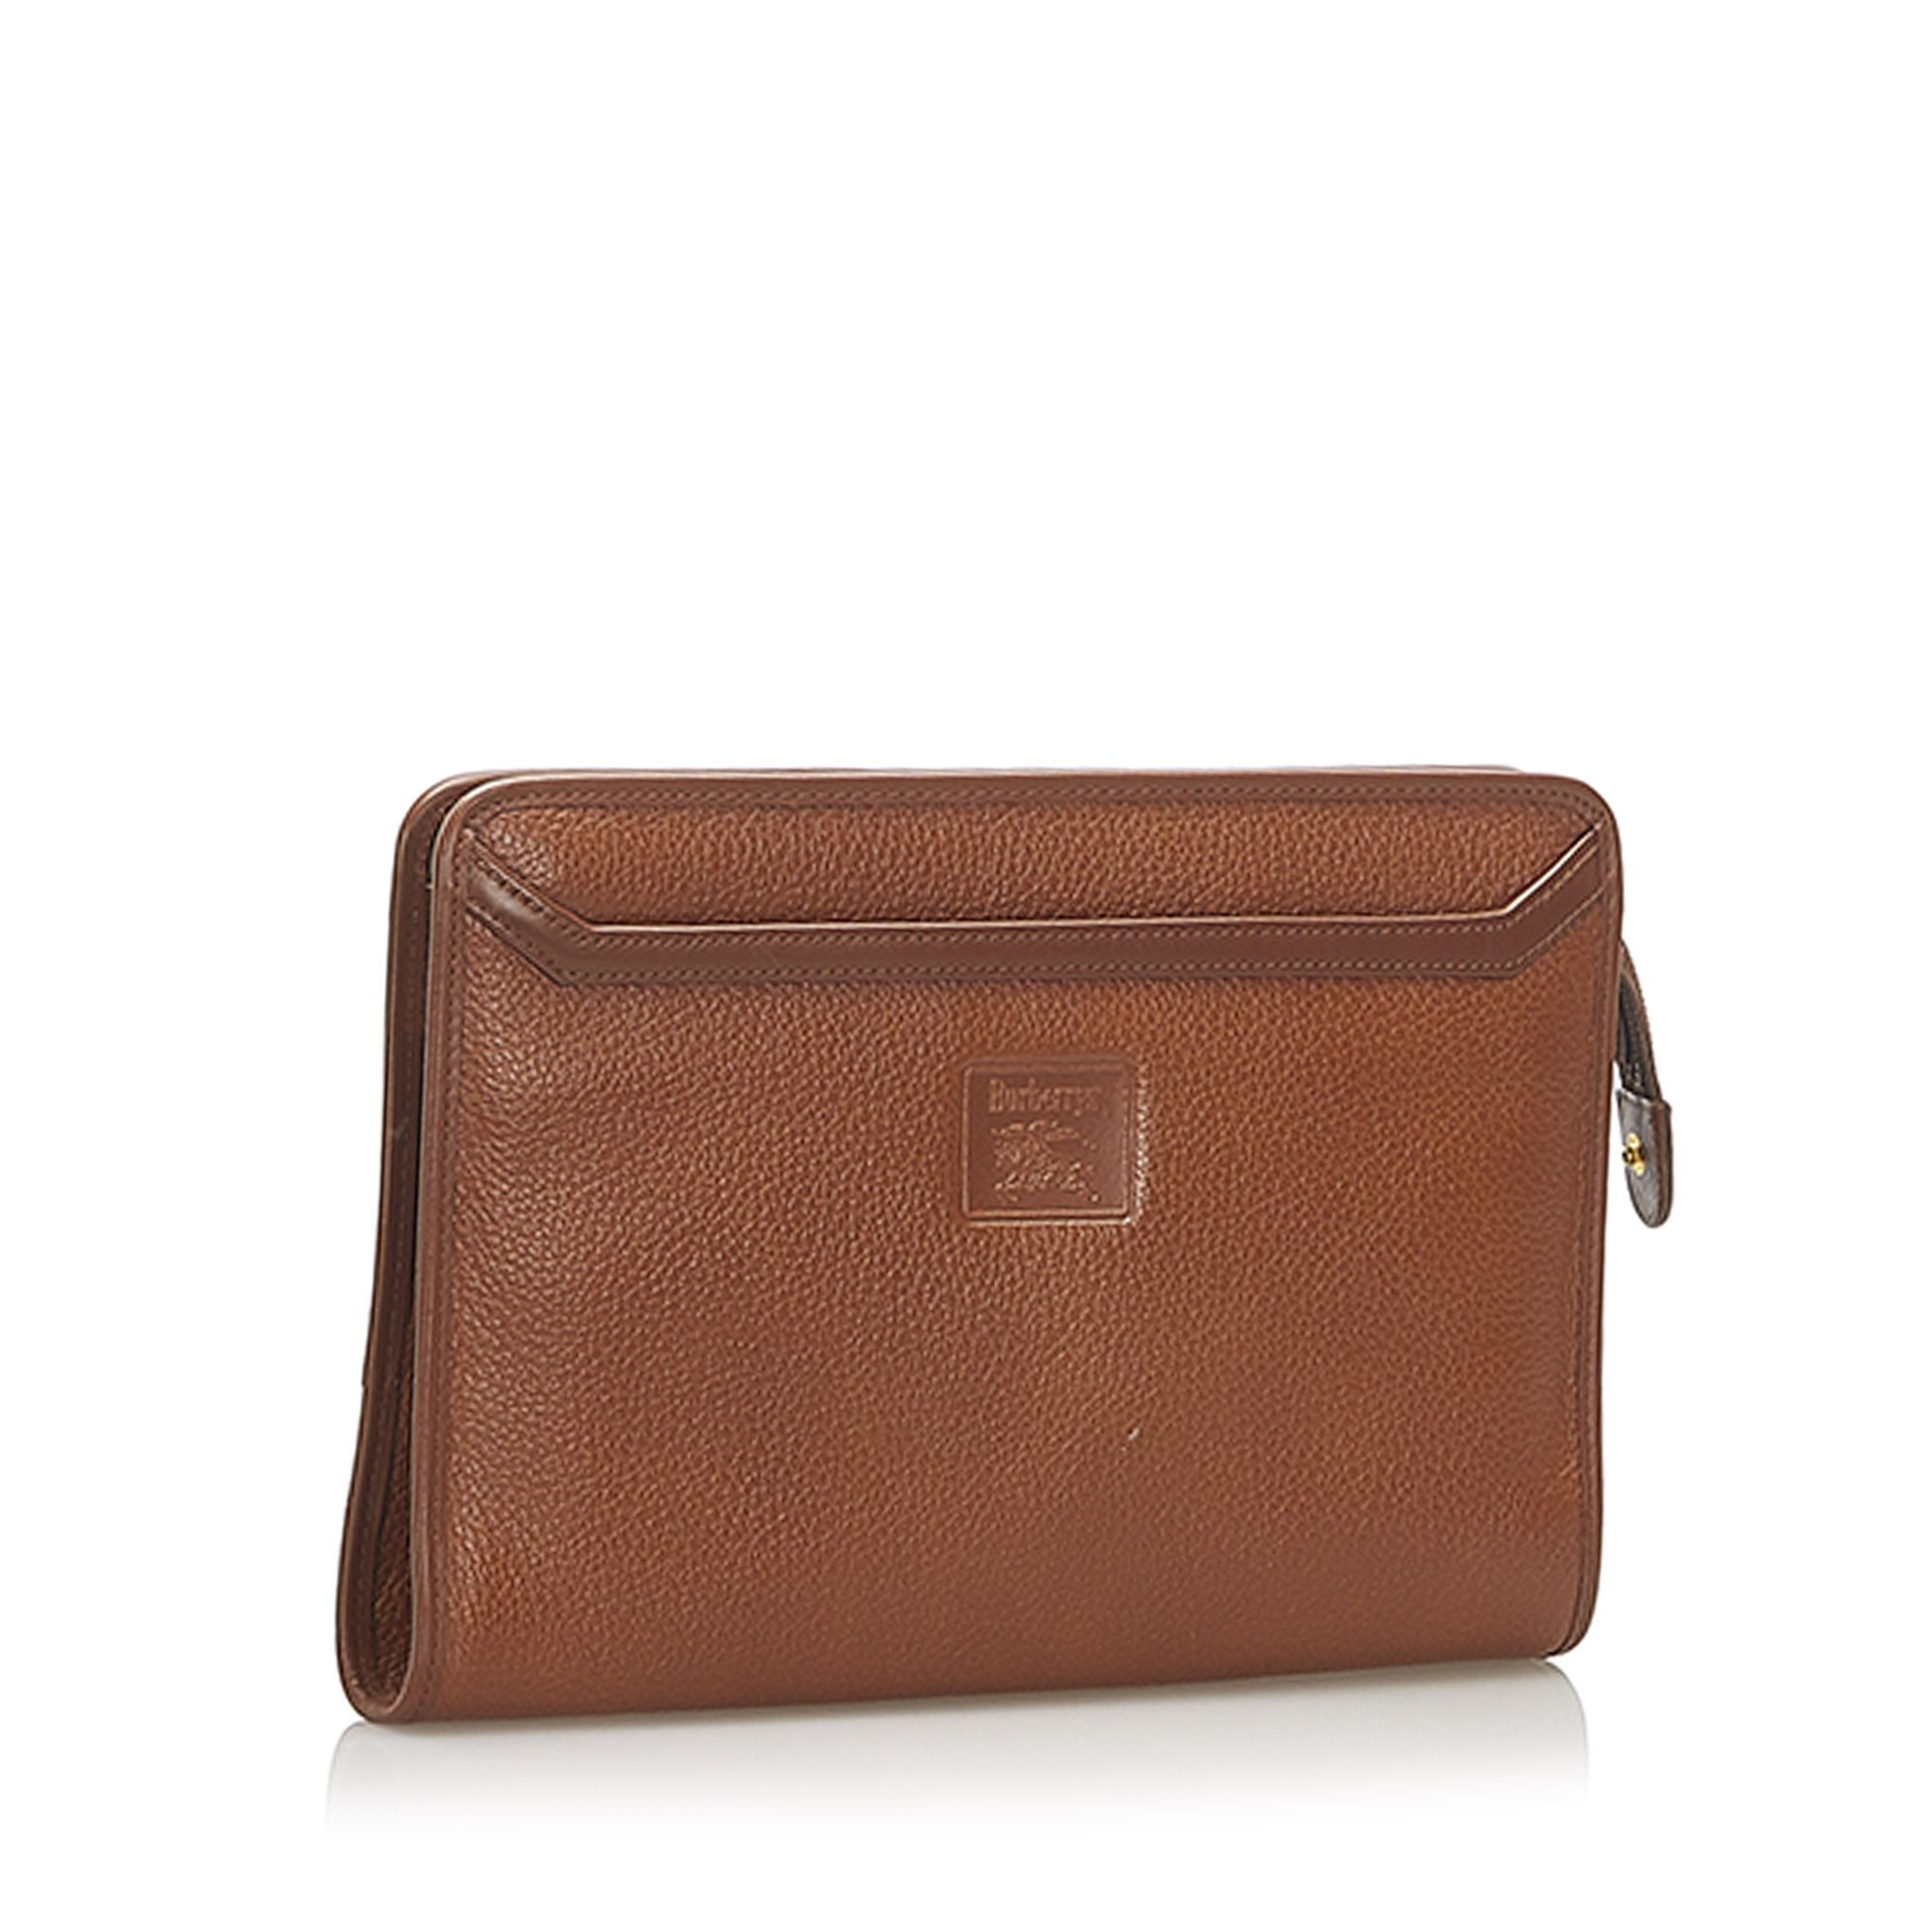 Vintage Burberry Leather Clutch Bag Brown